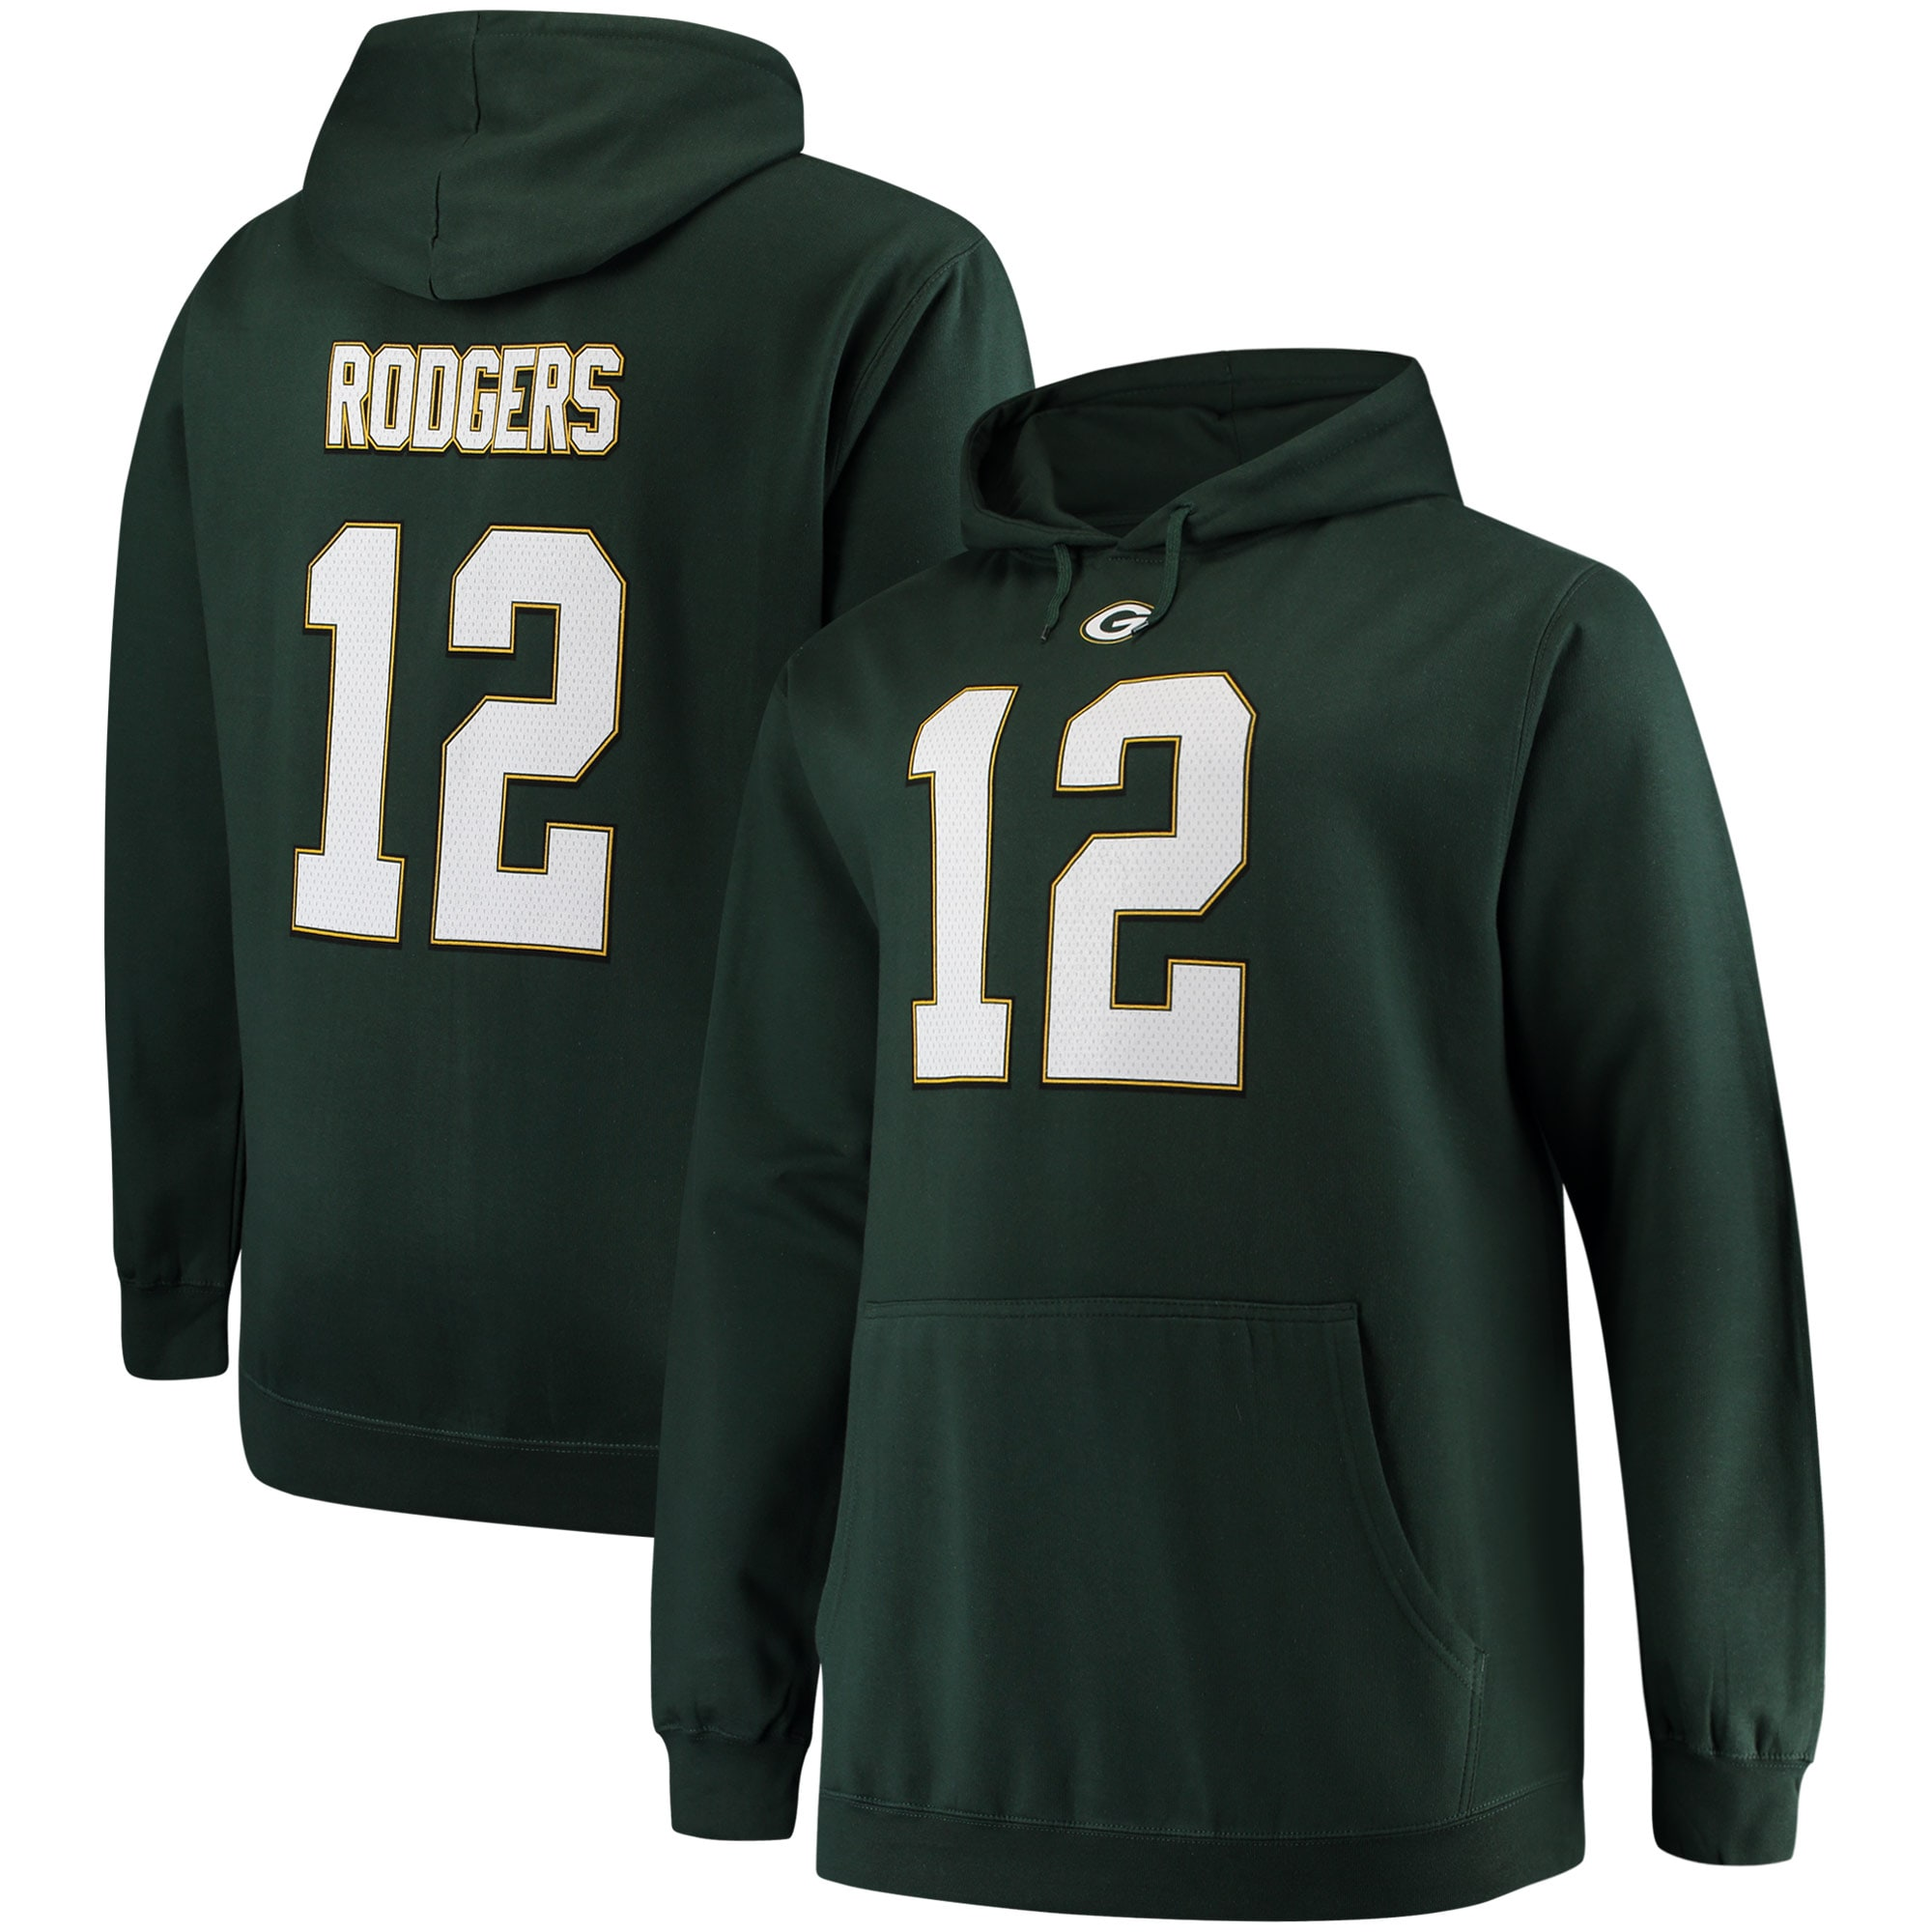 Aaron Rodgers Green Bay Packers Majestic Big & Tall Name & Number Pullover Hoodie - Green